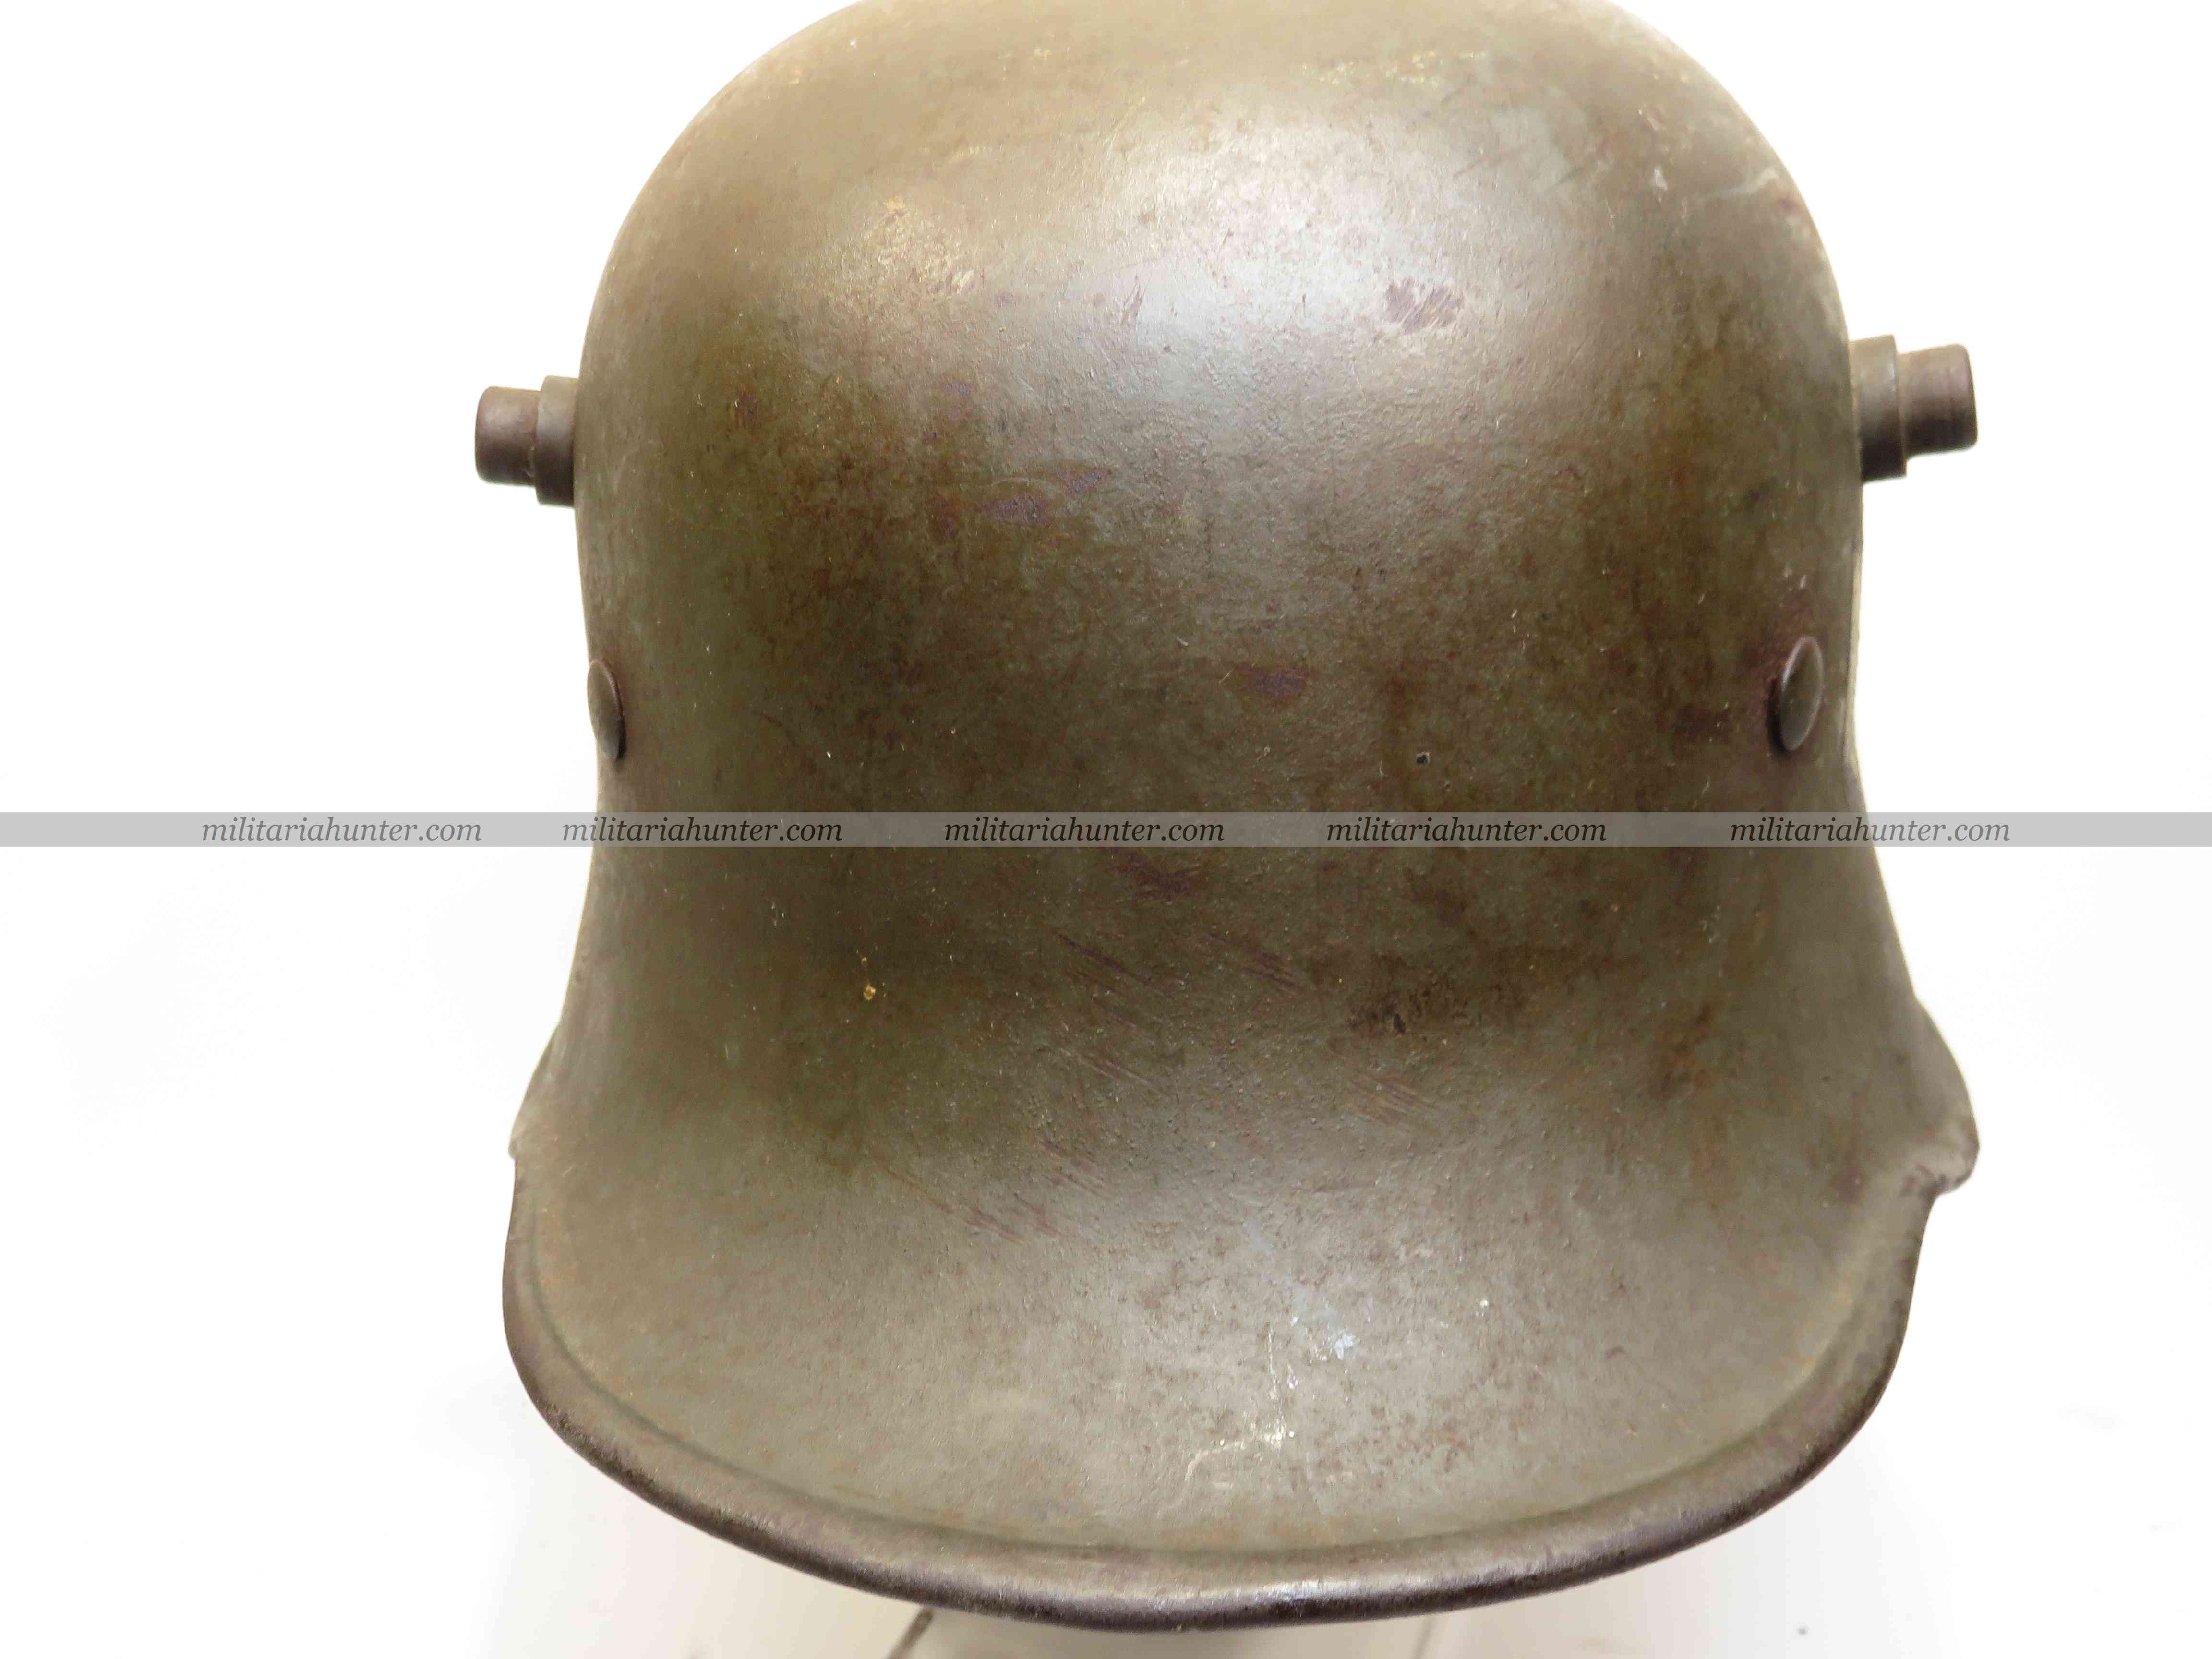 militaria : ww2 german refurbished M18 helmet - Stahlhelm M18 reconditionné Heer